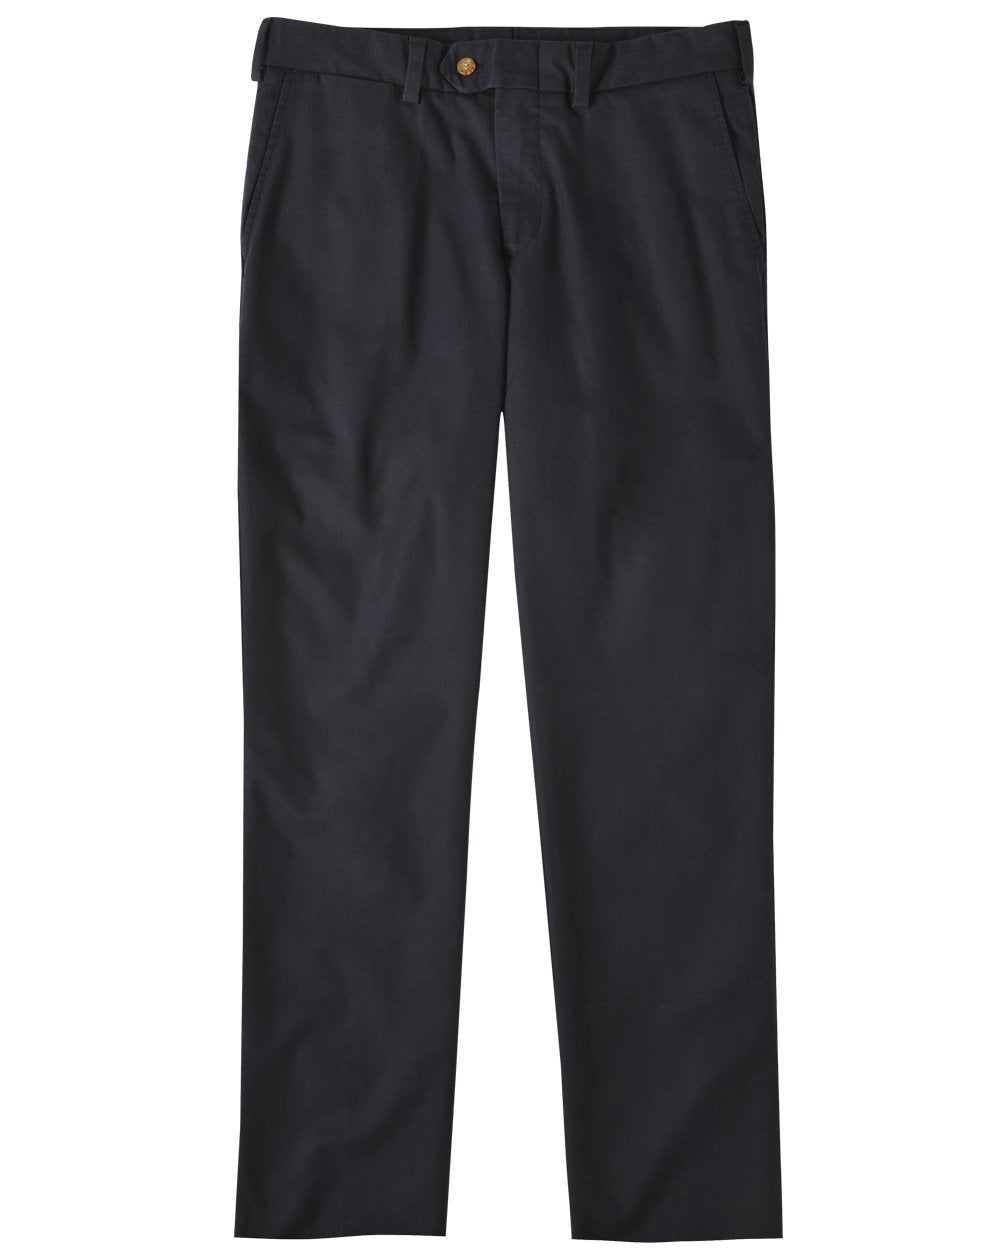 Bills Khakis Straight Fit Travel Twill Pant – Navy